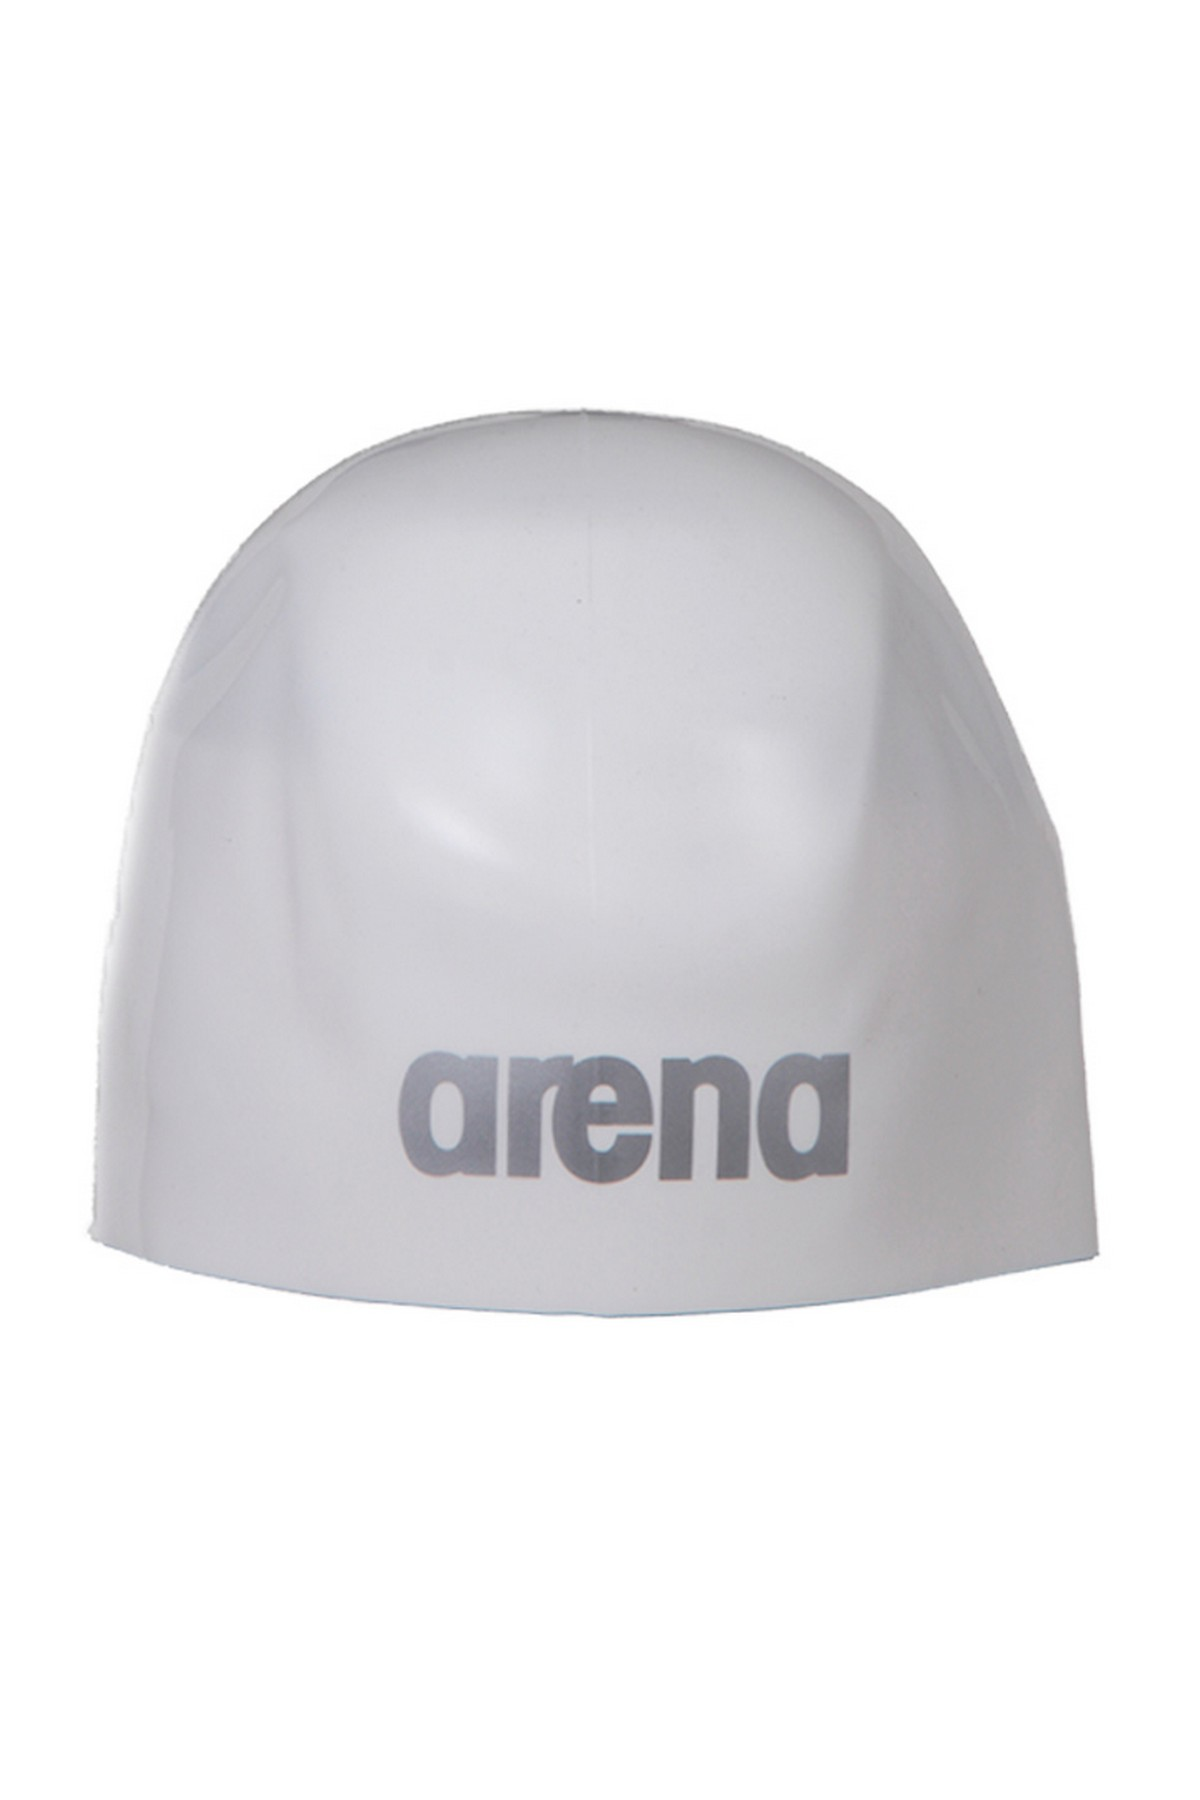 Arena 9165620-1